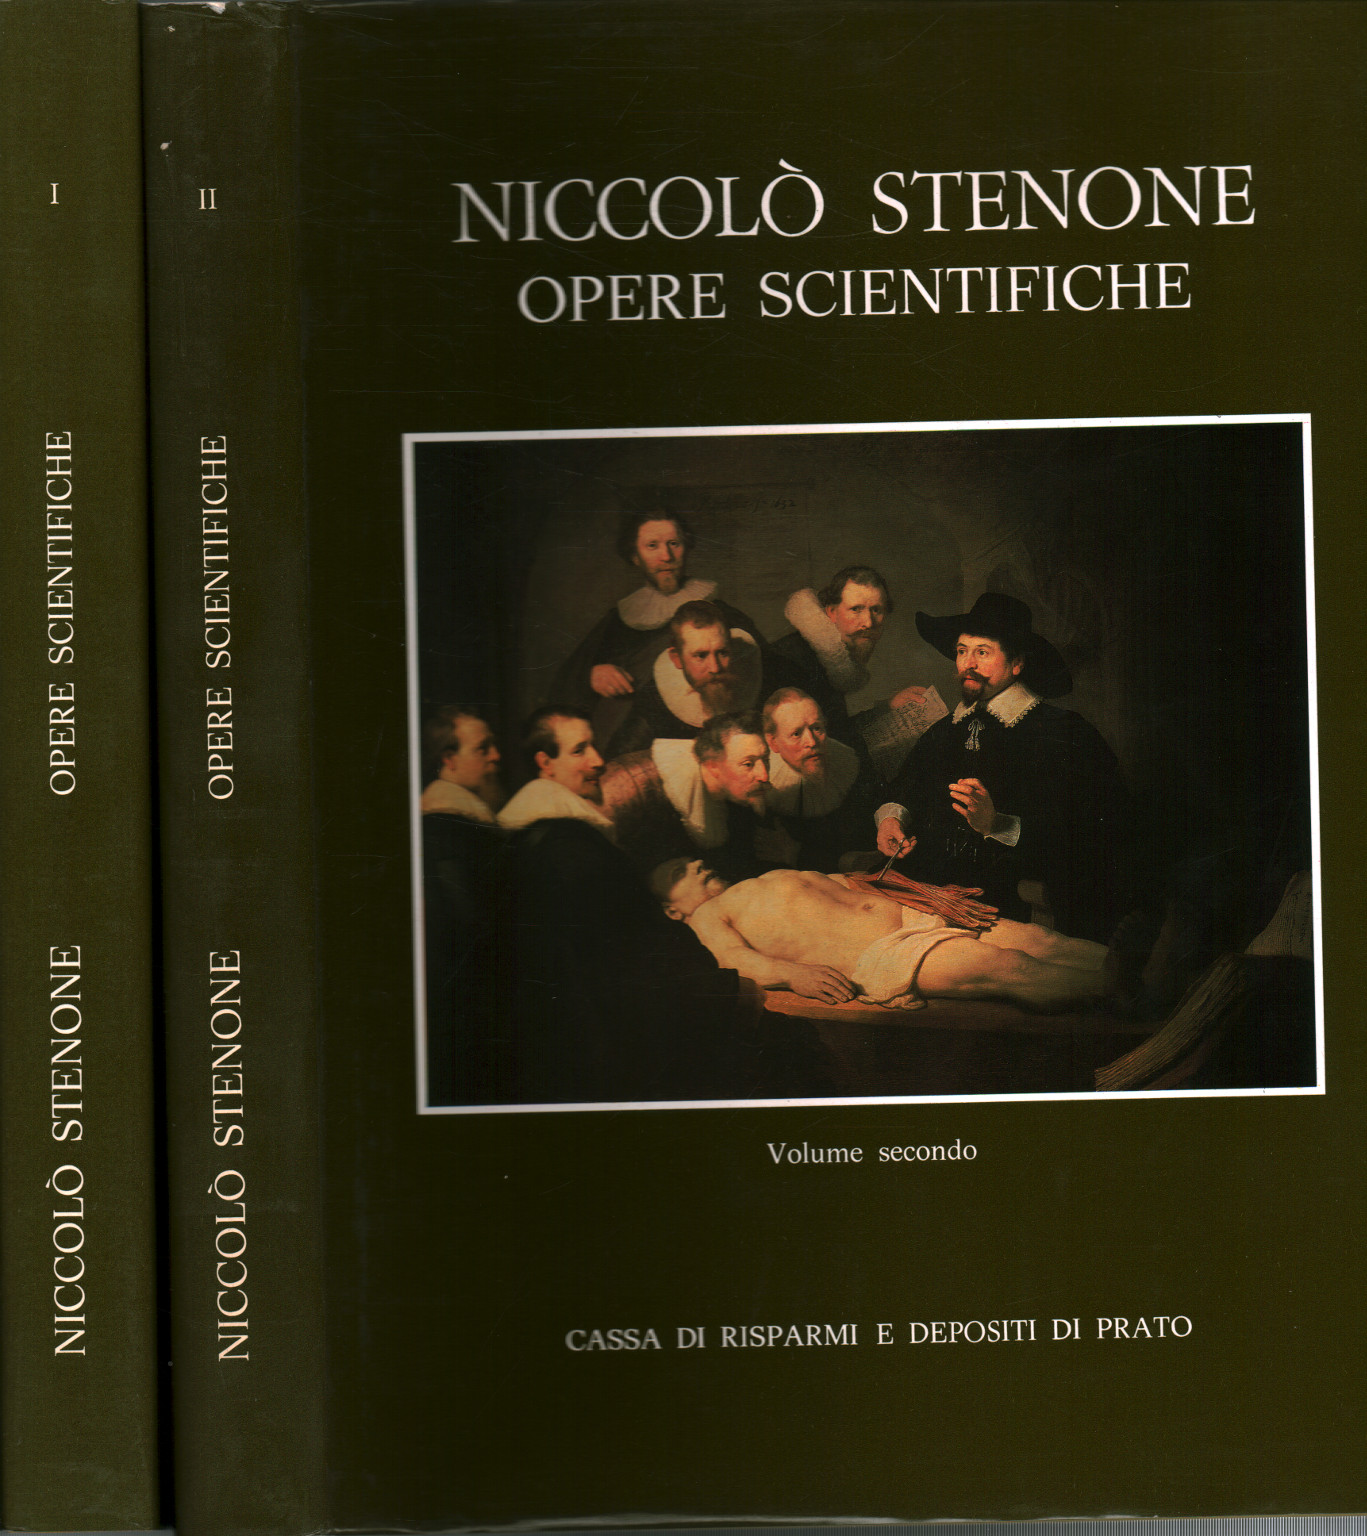 Niccolò Stenone. Opere scientifiche (2 Volumi), s.a.